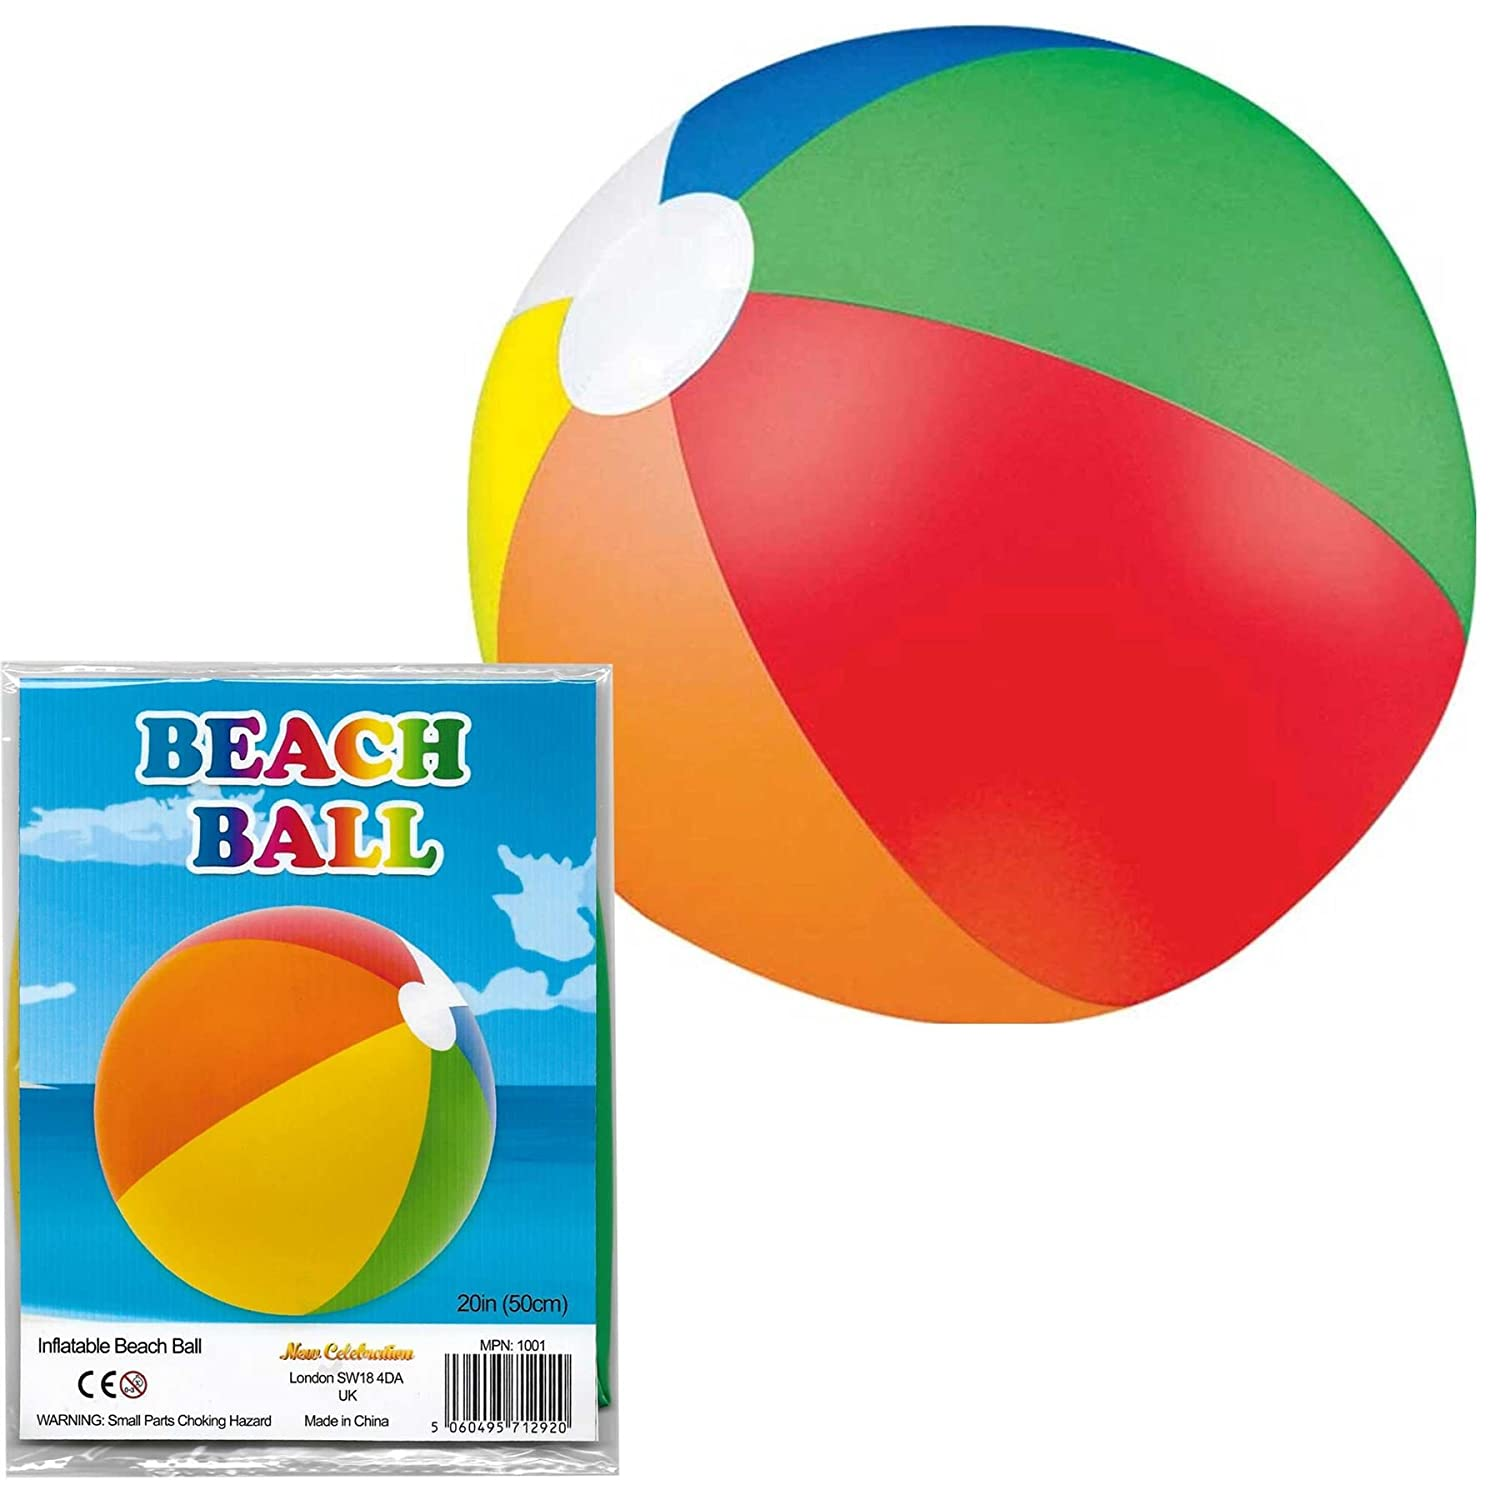 "New Celebration 20"" Inflatable Beach Ball Pool Party Multi Colour Kids Water Fun Play Summer 1pcs"